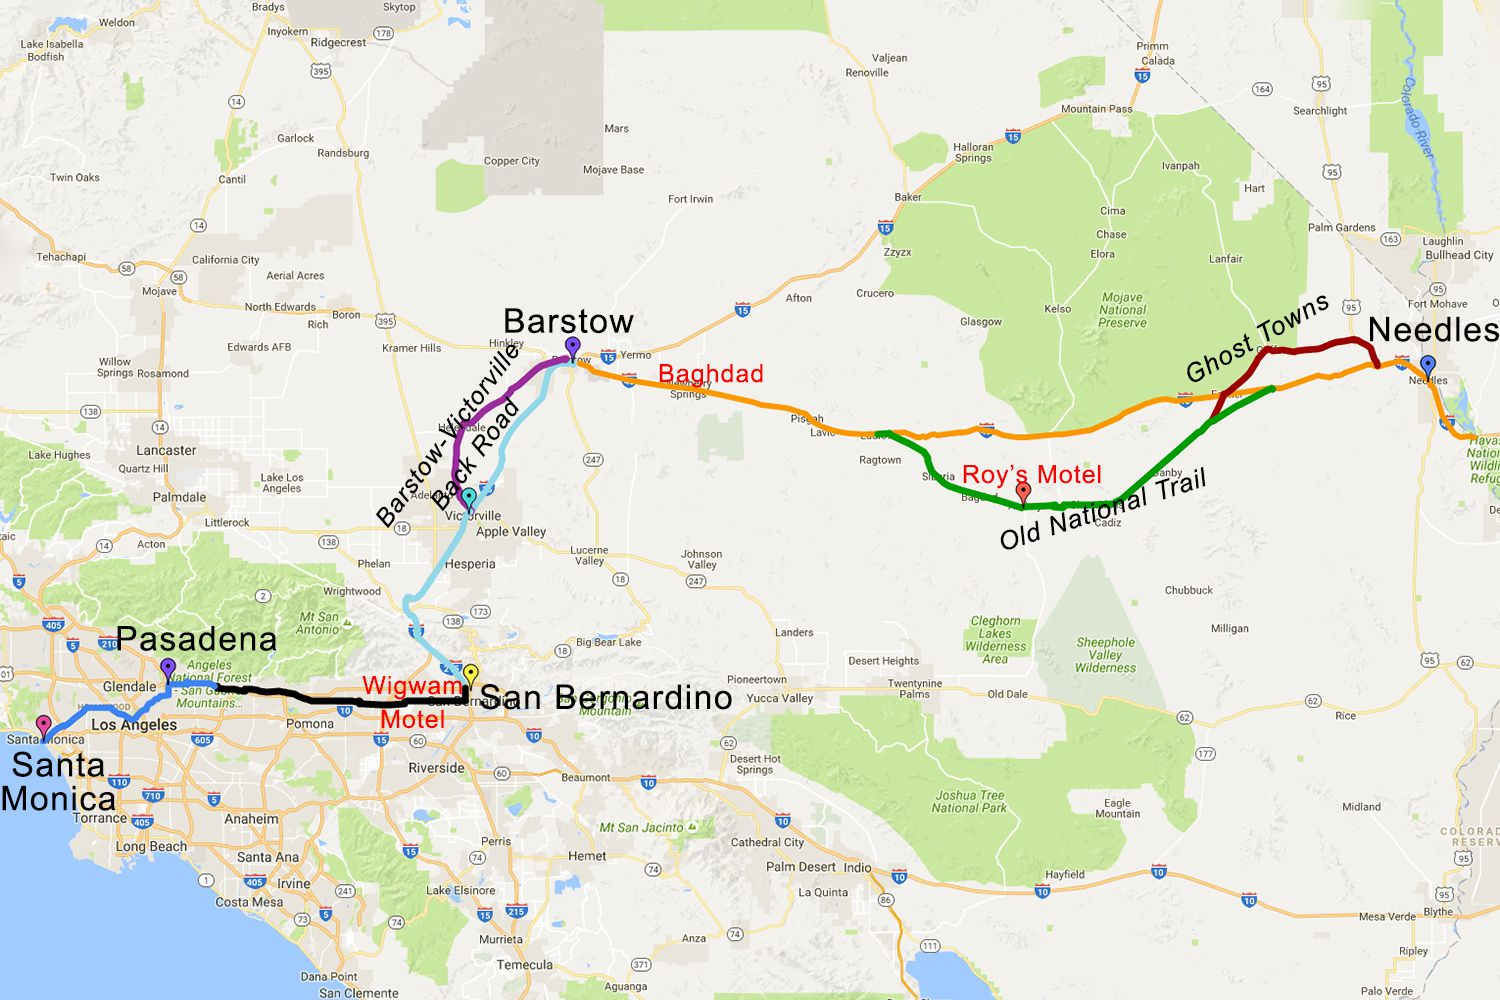 Route 66 in California Driving Tour and Road Trip